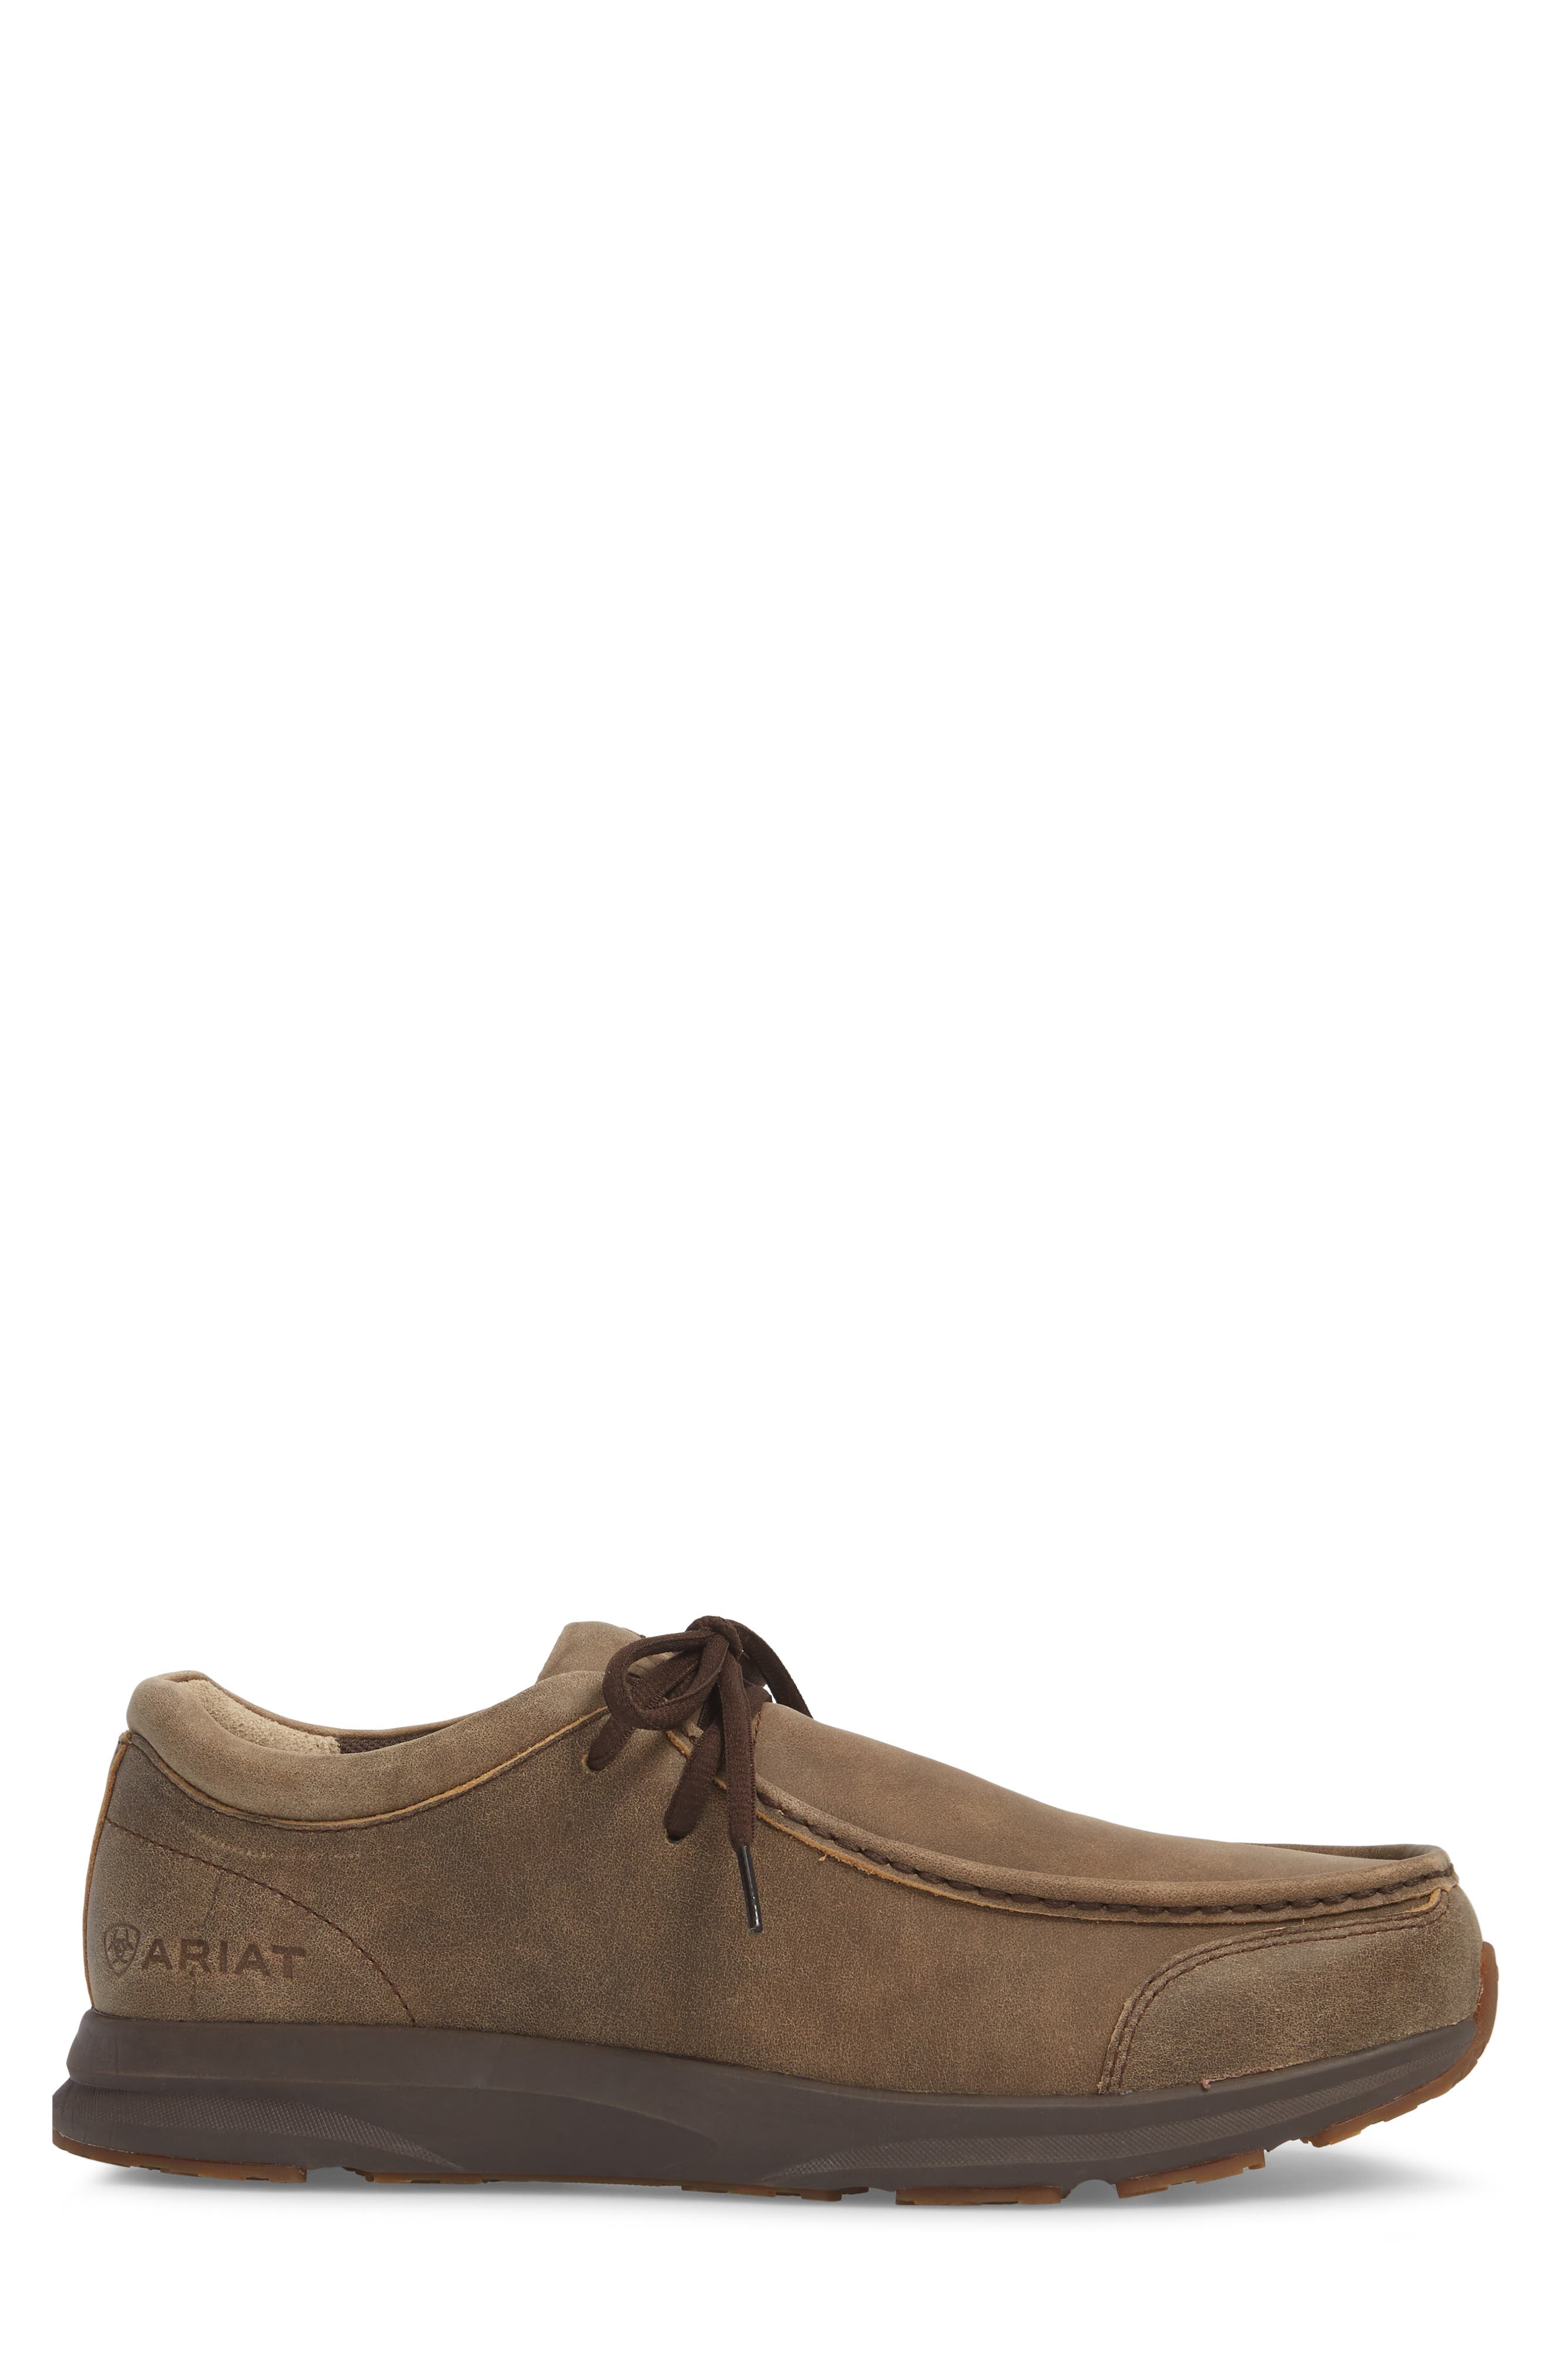 Spitfire Moc Toe Lace-Up,                             Alternate thumbnail 3, color,                             BROWN LEATHER